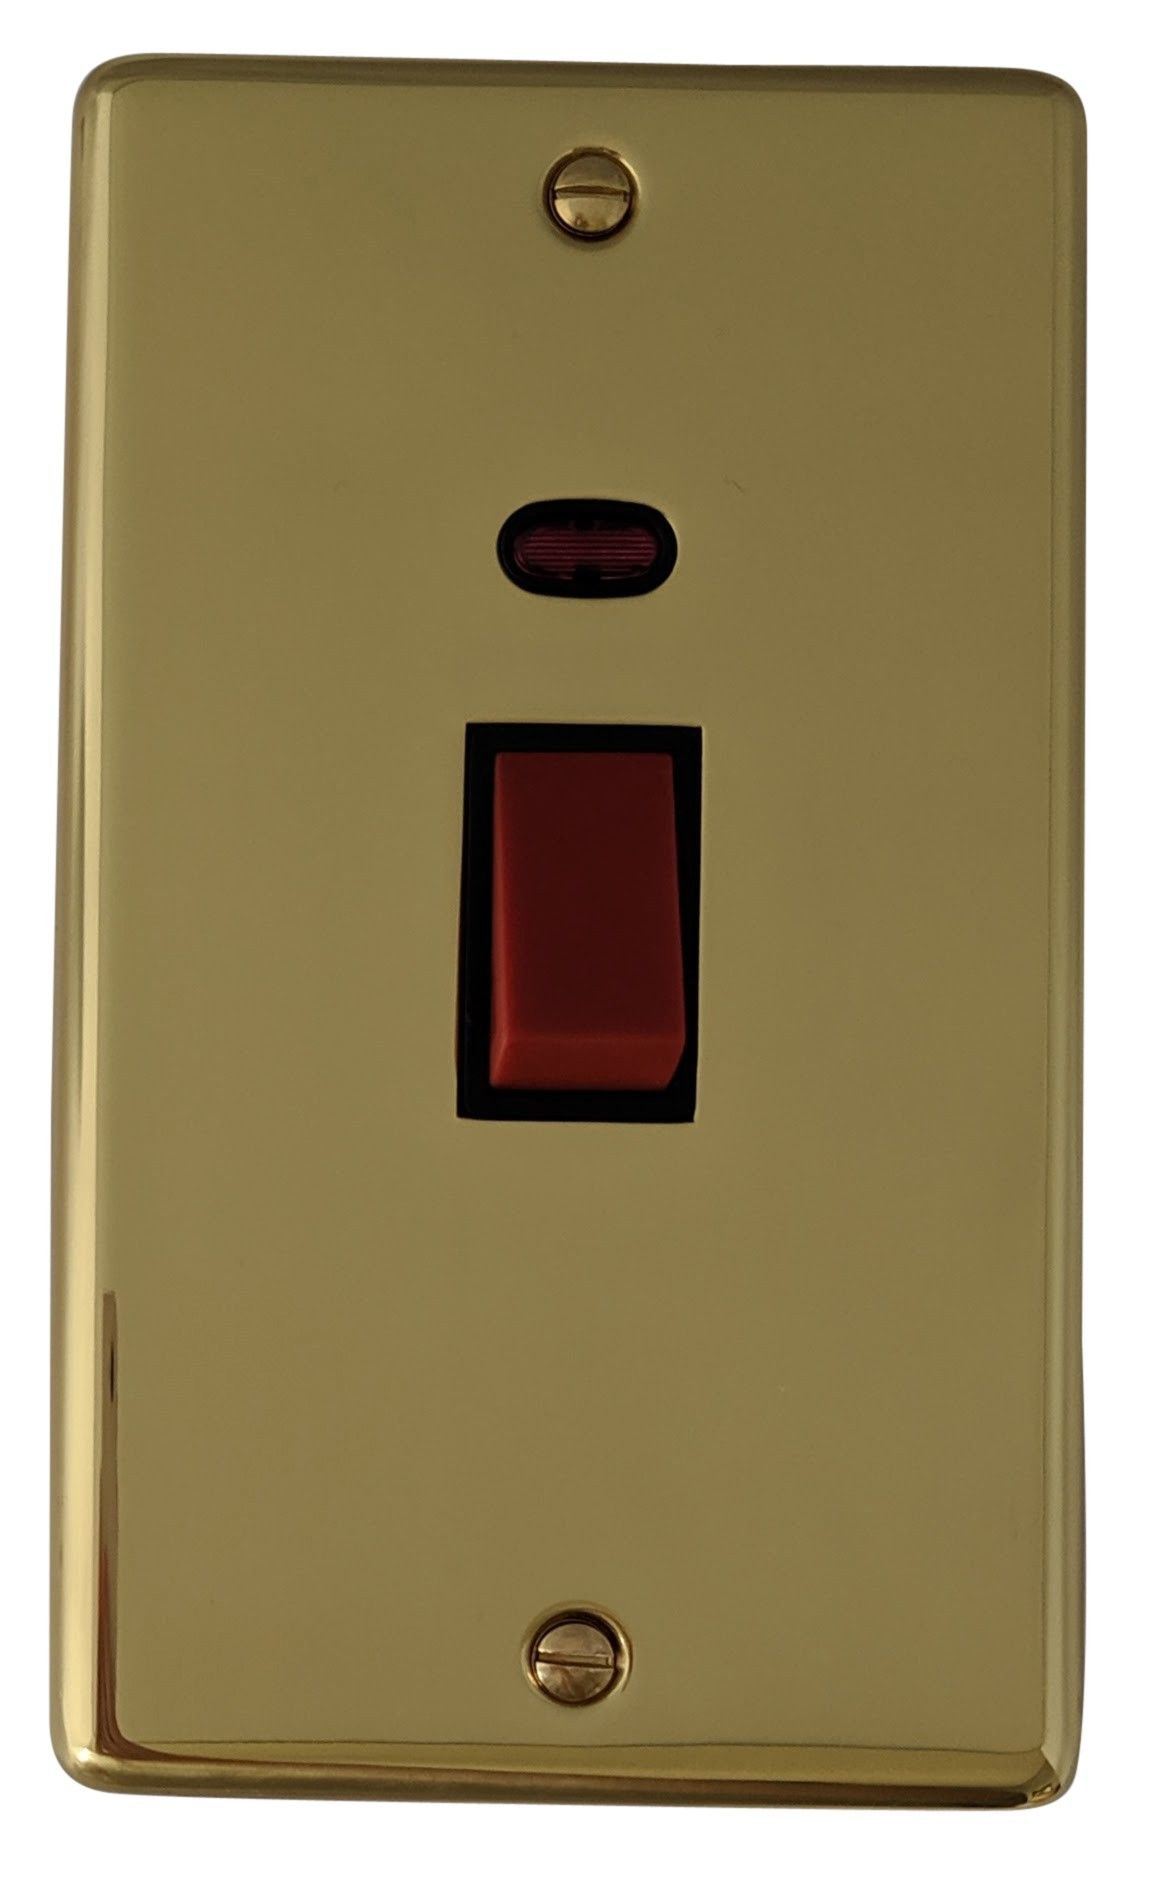 G&H CB28B Standard Plate Polished Brass 45 Amp DP Cooker Switch & Neon Vertical Plate